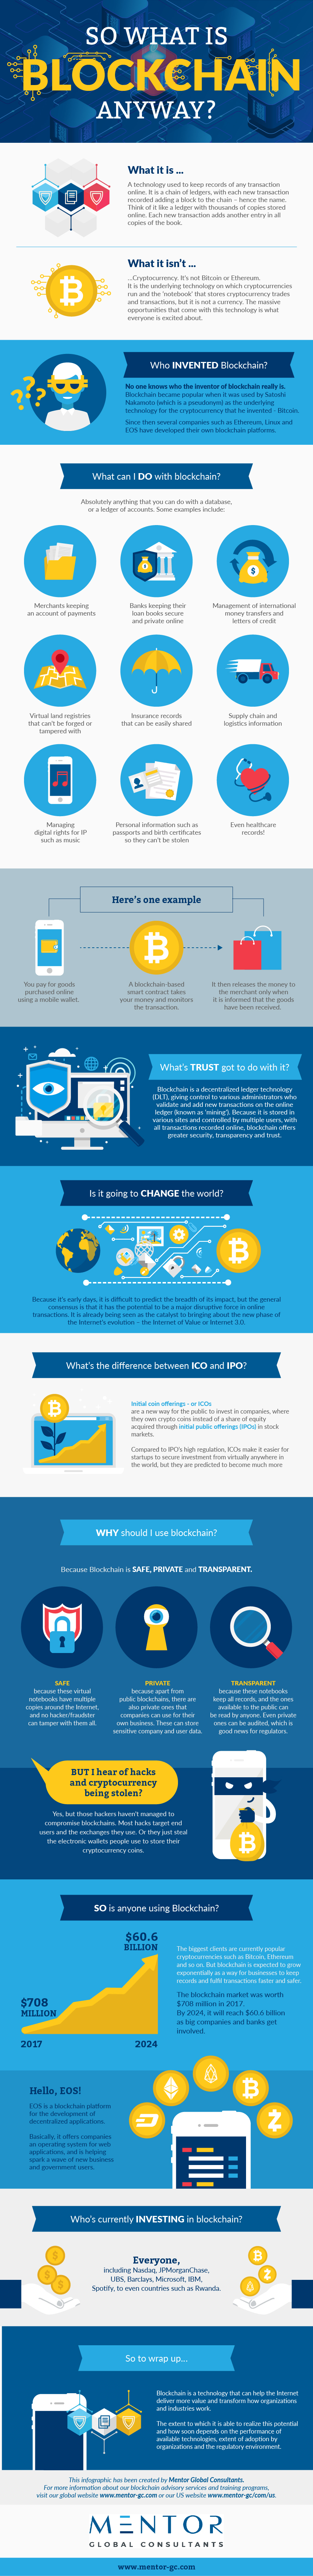 infographic-so-what-is-blockchain-anyway.jpg?mtime=20180930144806#asset:52453